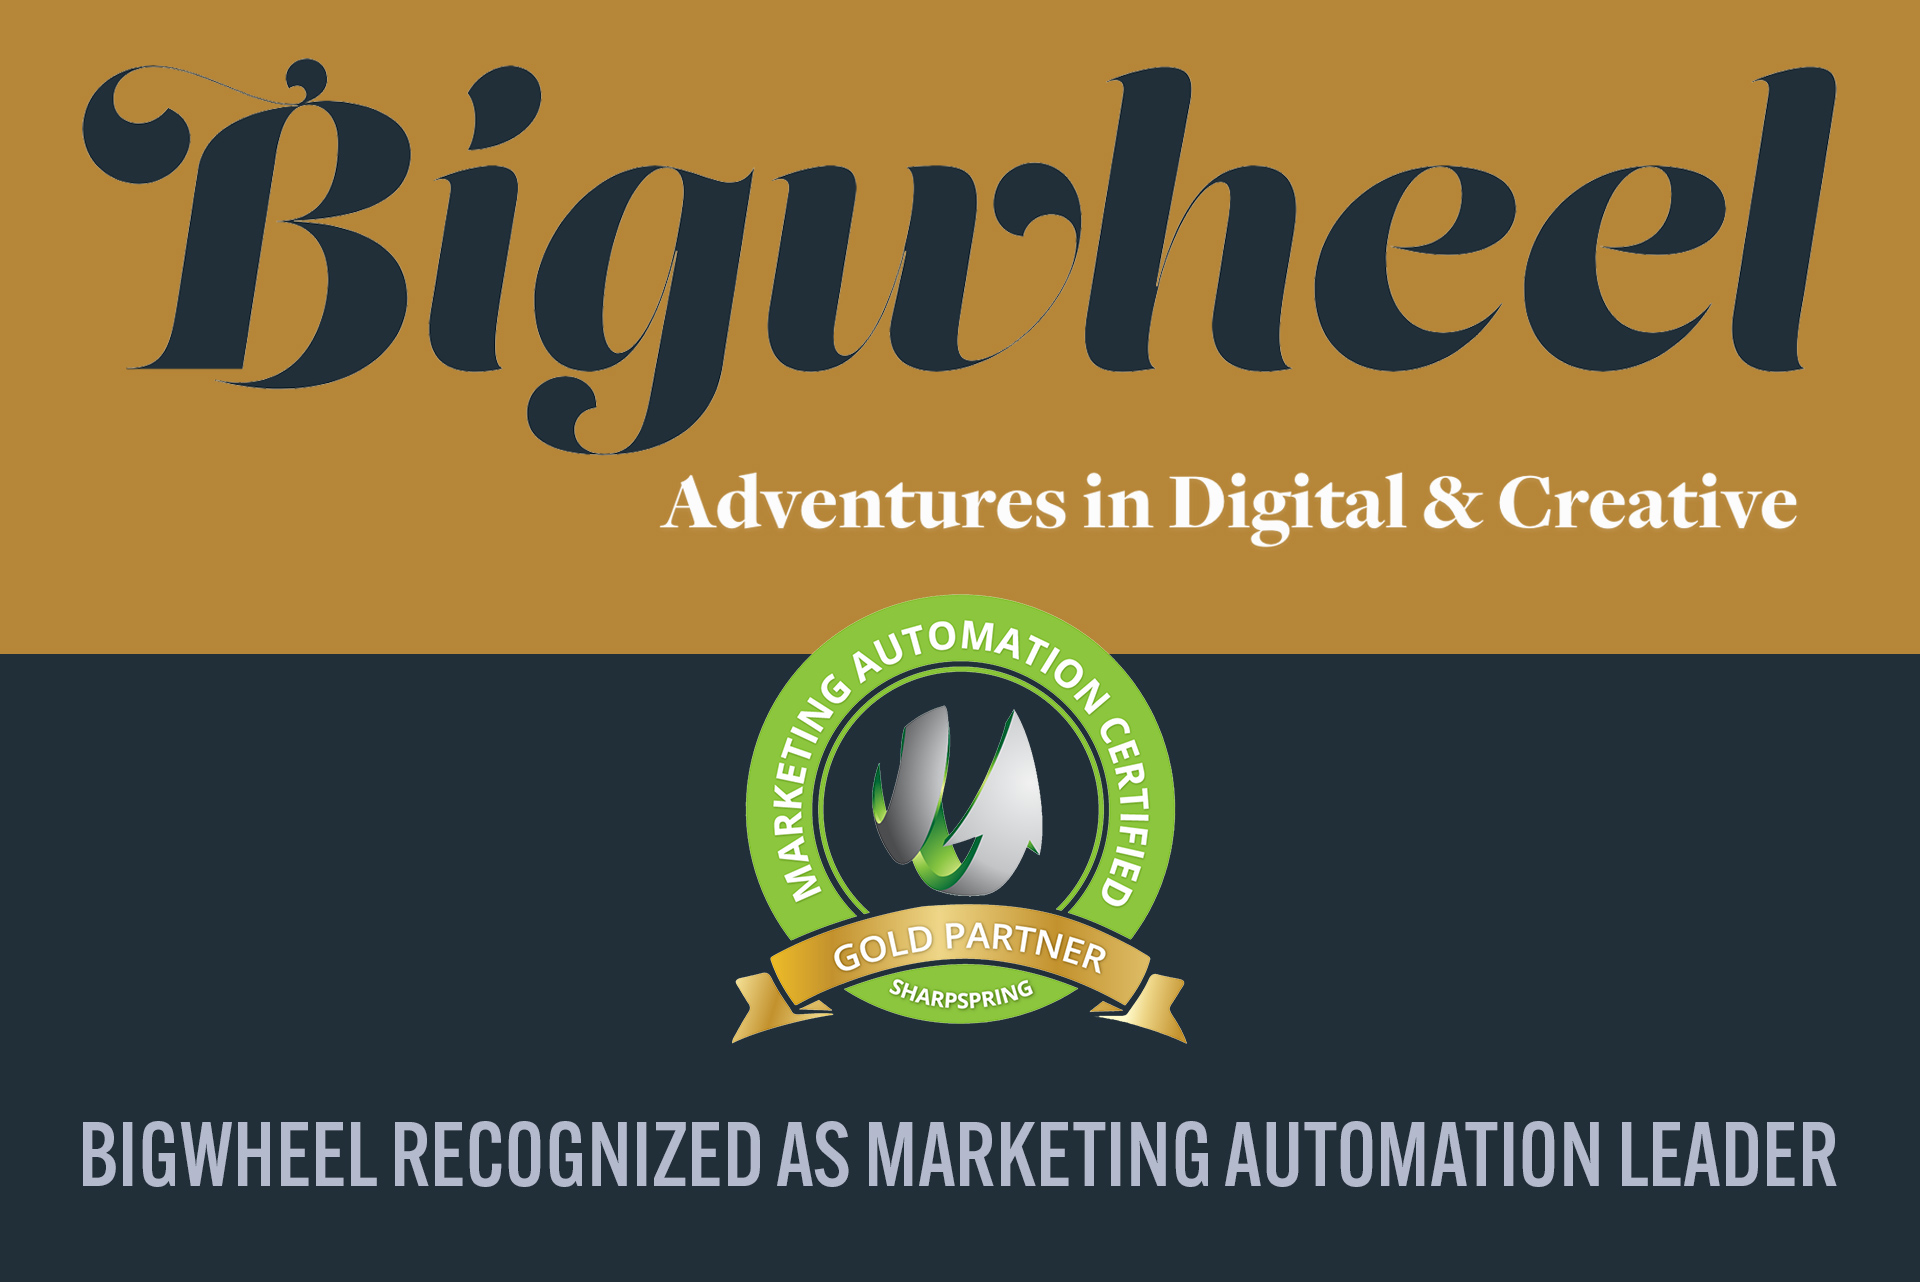 no alt text set